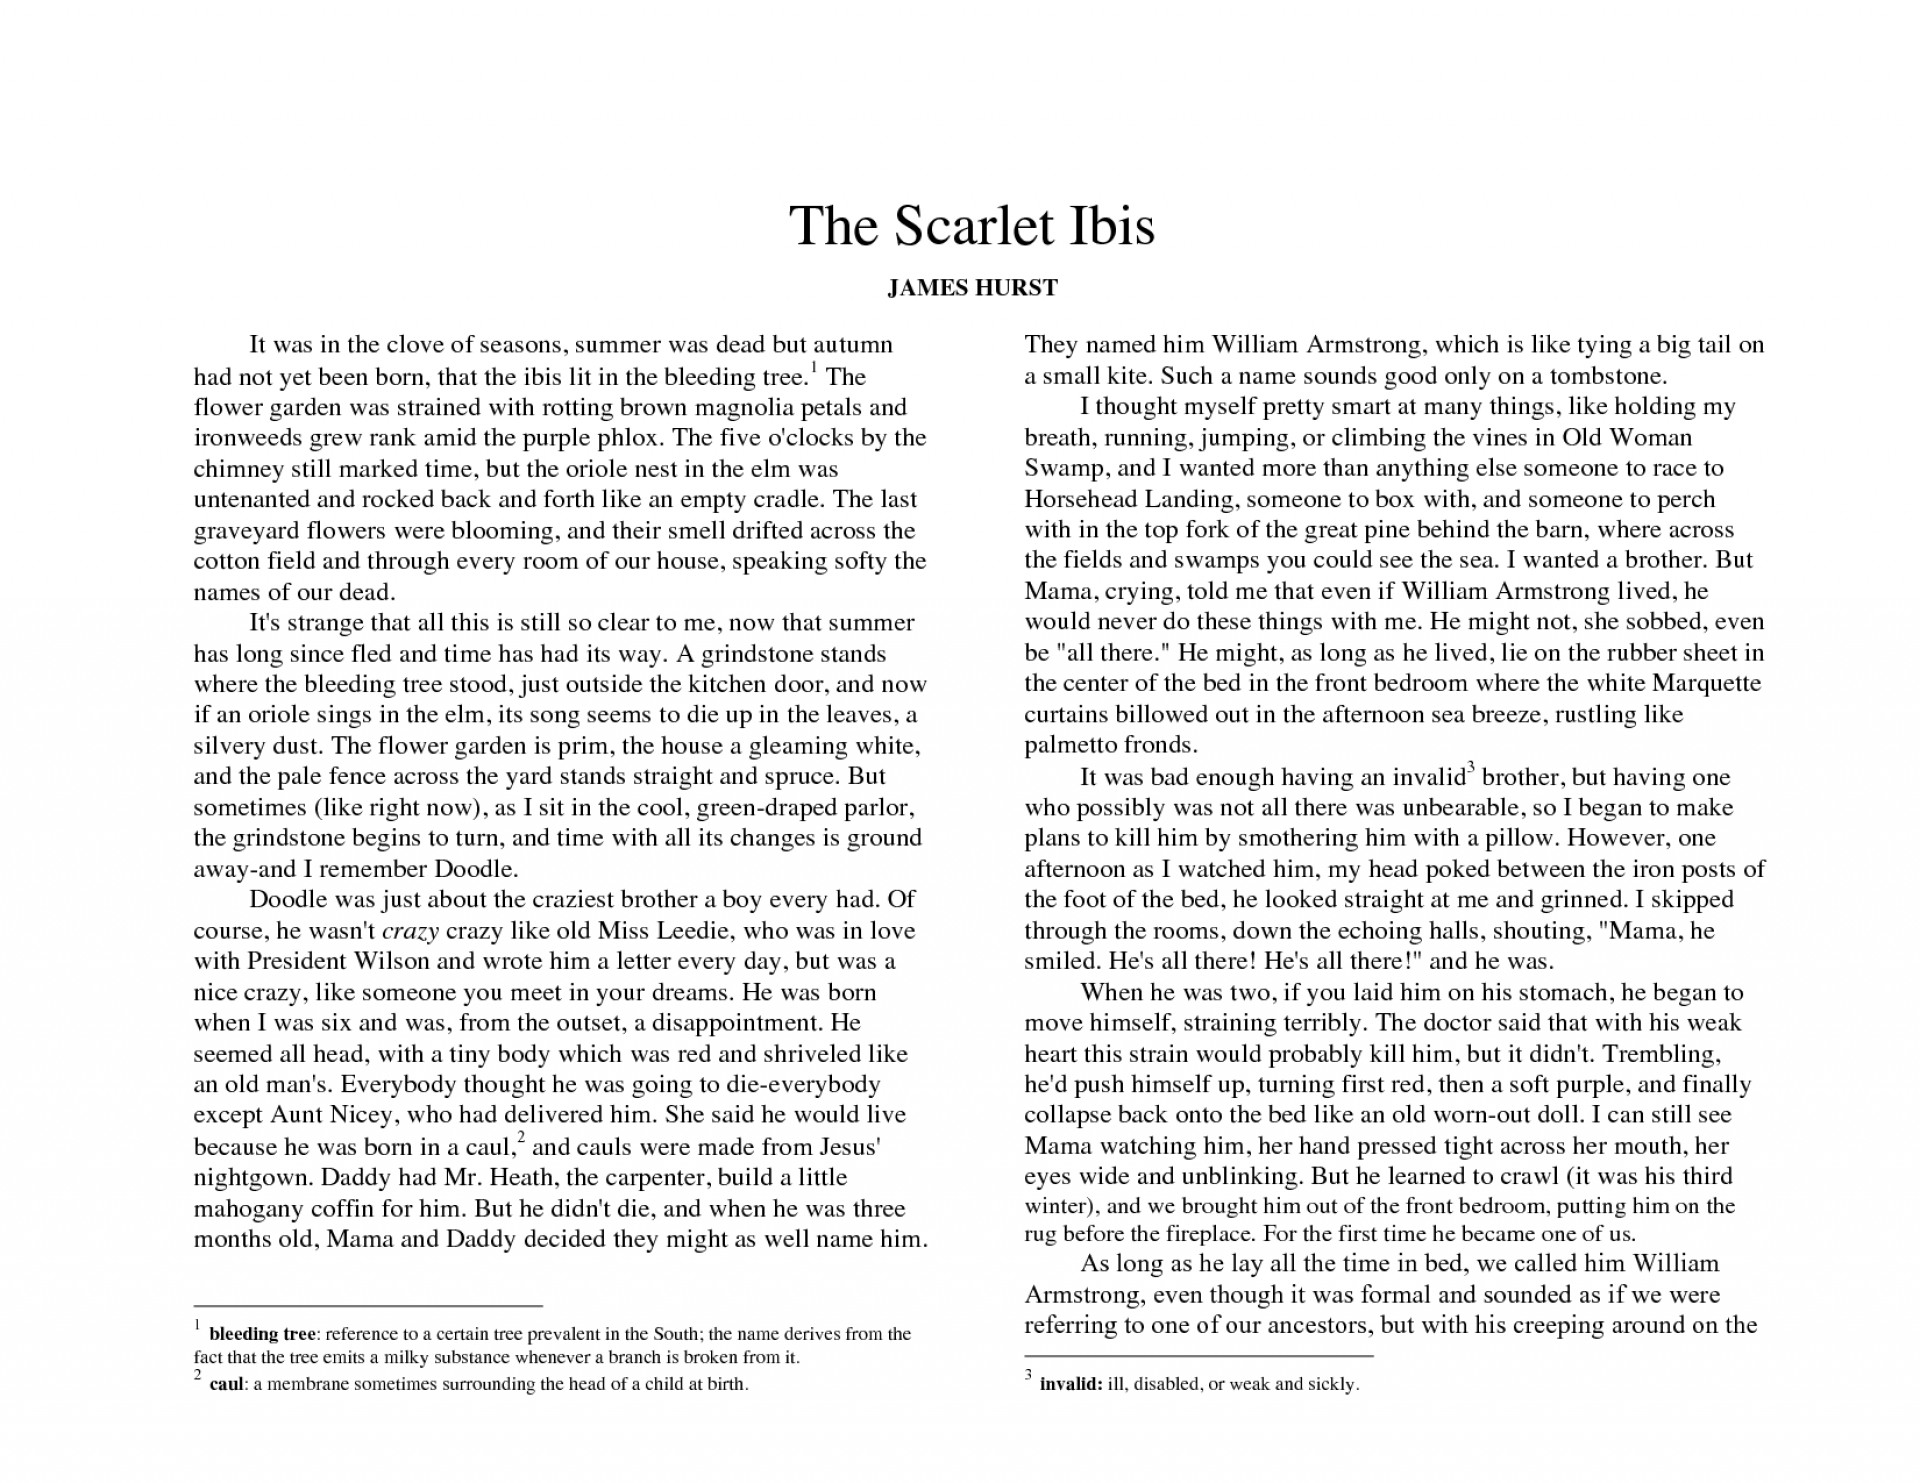 002 Essay Example The Scarlet Best Ibis Thesis Questions Discussion 1920